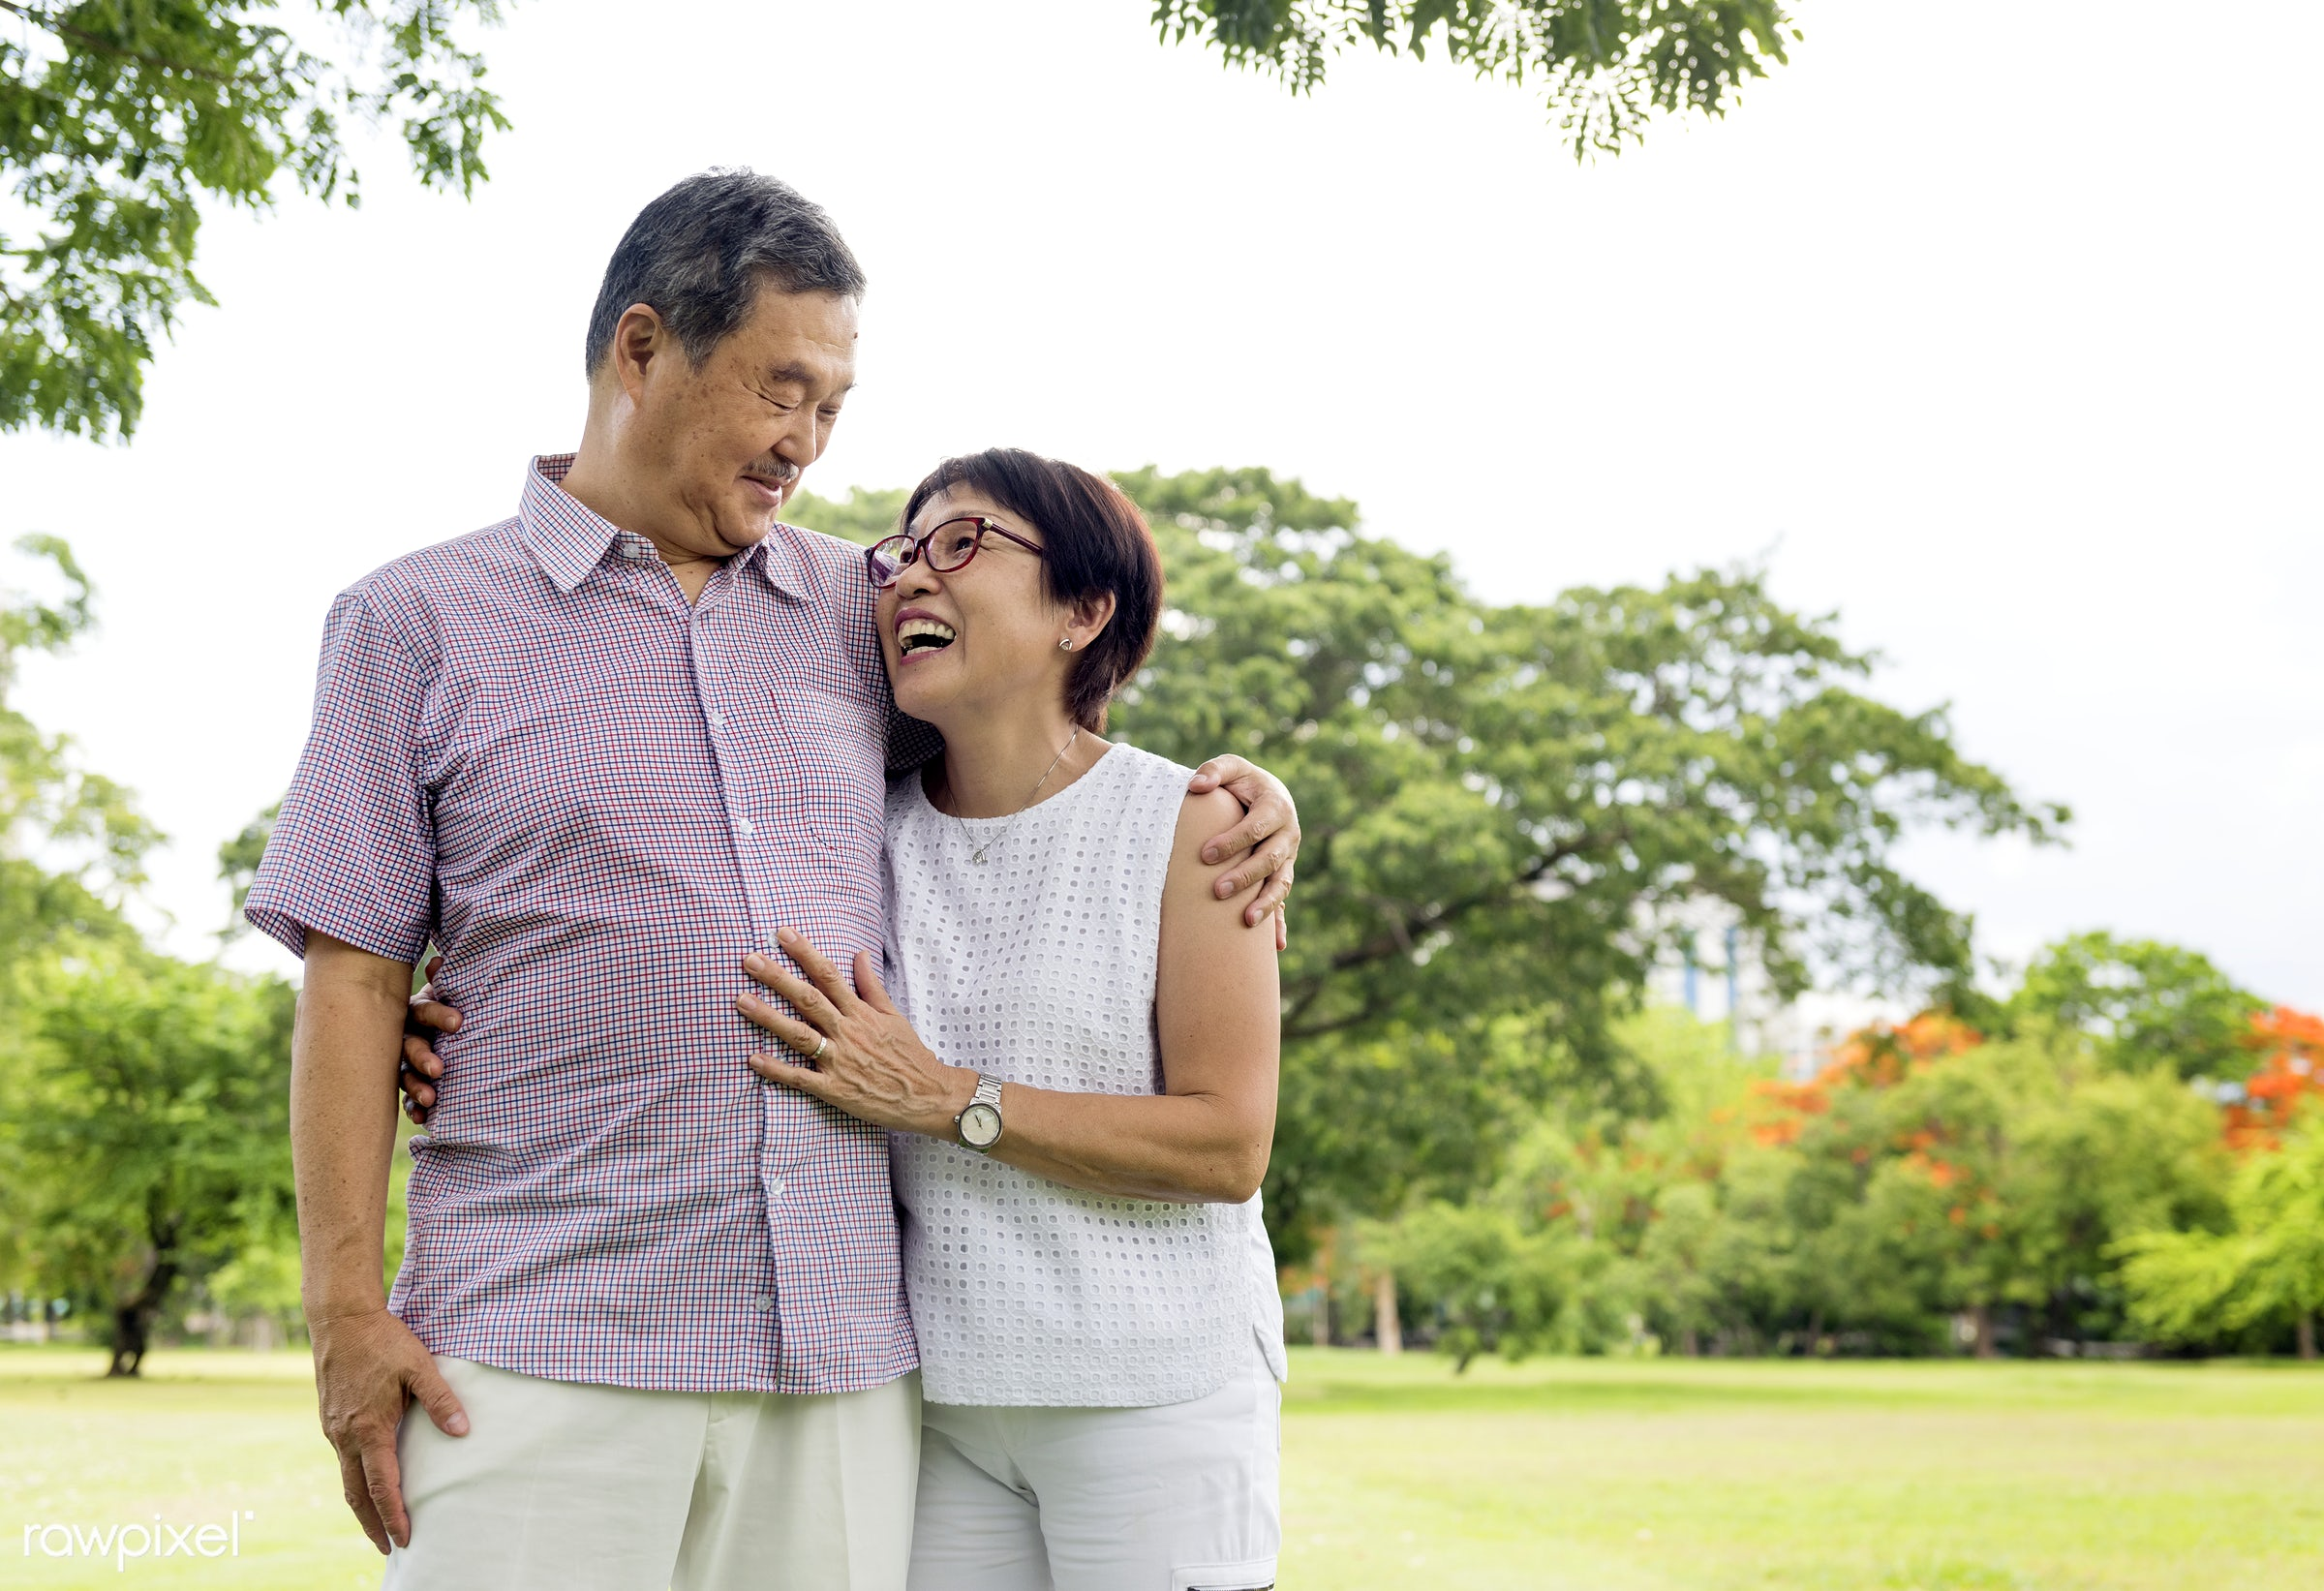 Cute senior couple in the park - family, retirement, park, love, care, elder, adult, asian, casual, cheerful, communication...